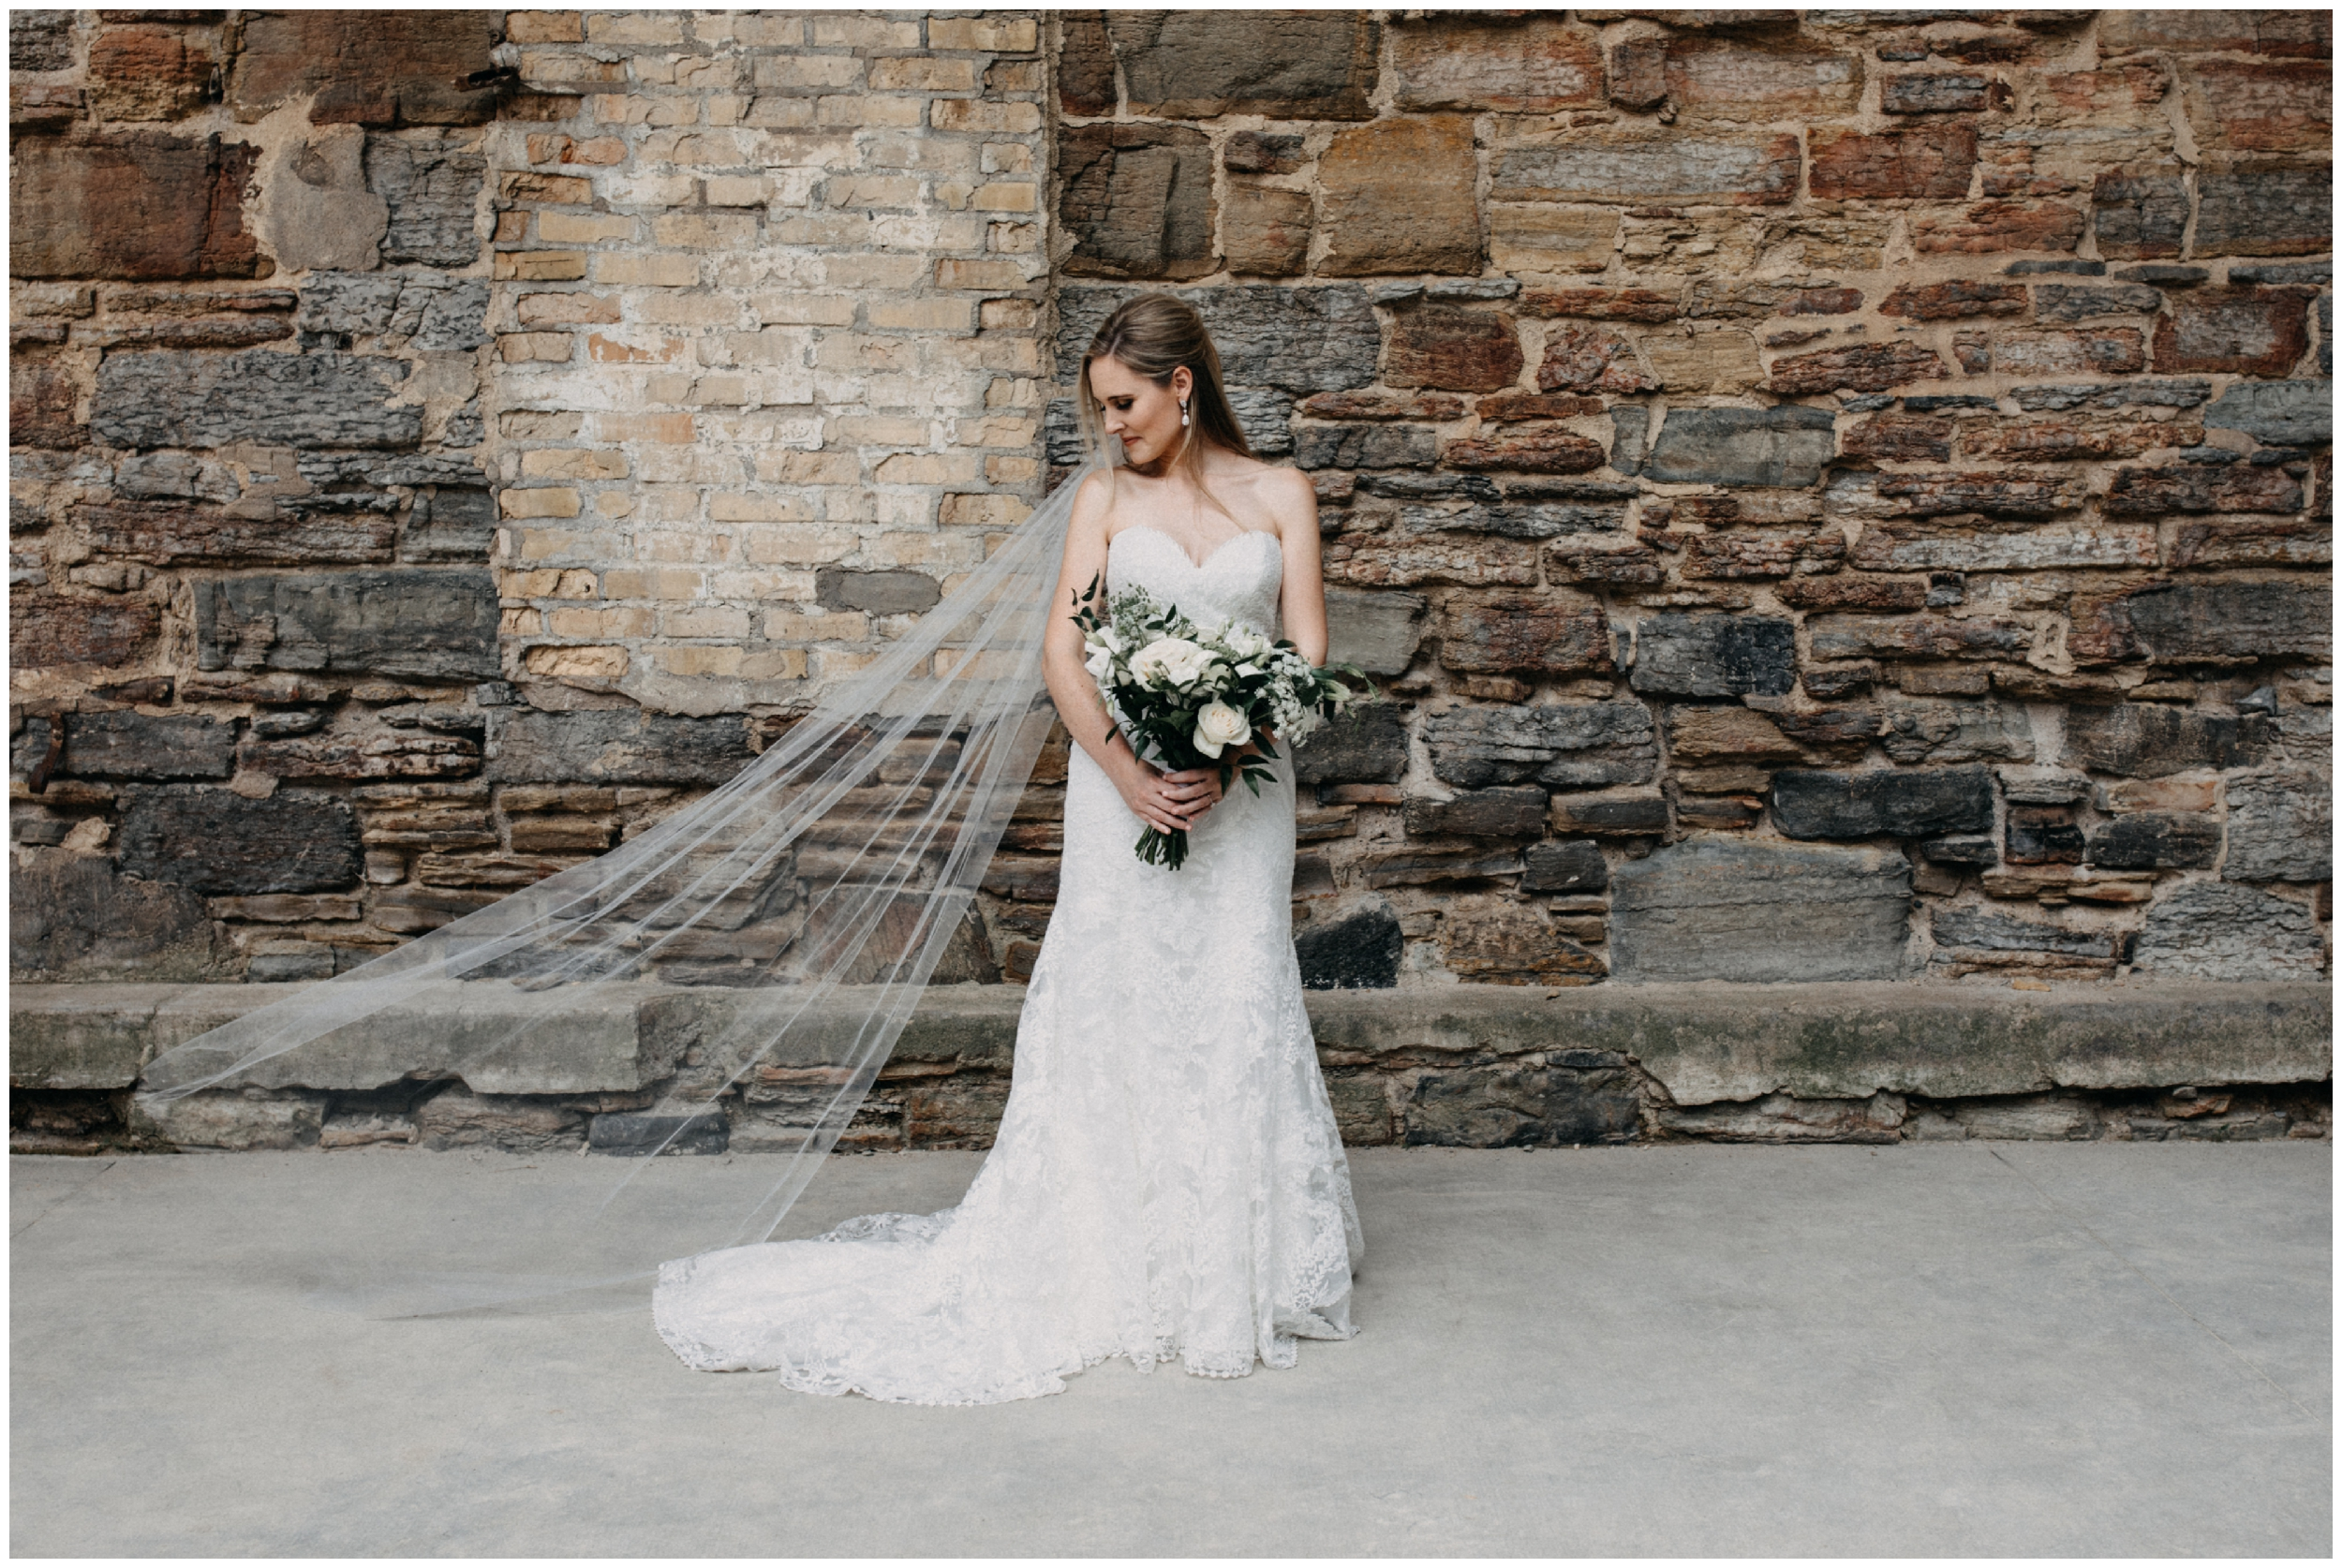 Industrial chic wedding at Mill City museum